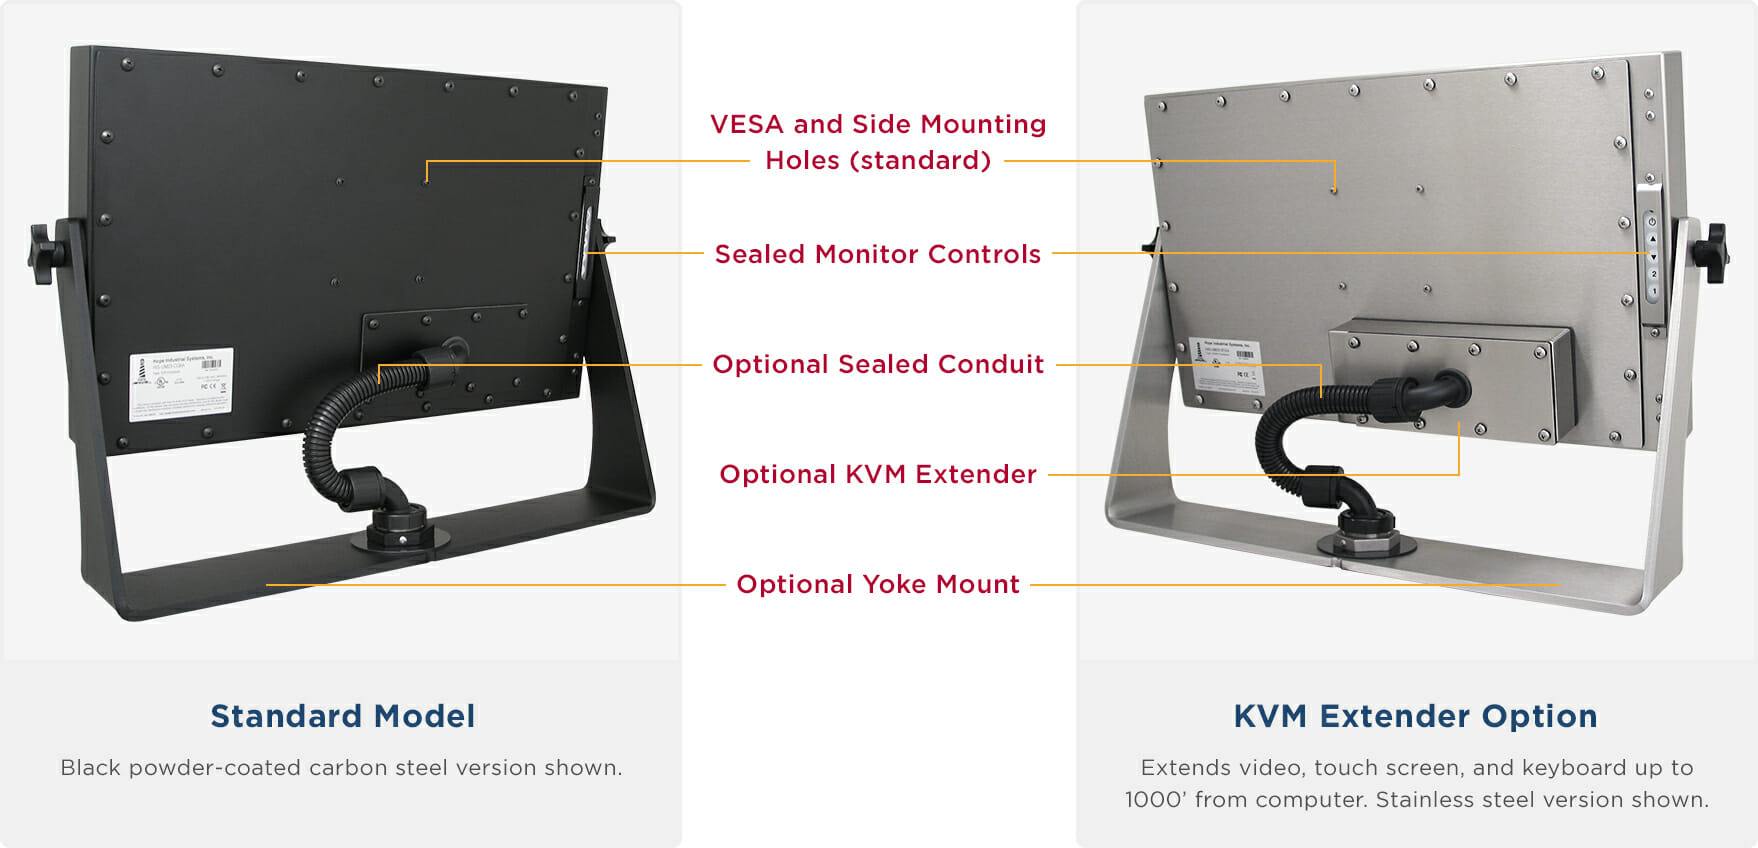 """Rear views of NEMA 4/4X Rated Widescreen 23"""" Universal Mount Monitors showing Industrial Enclosure features and options"""